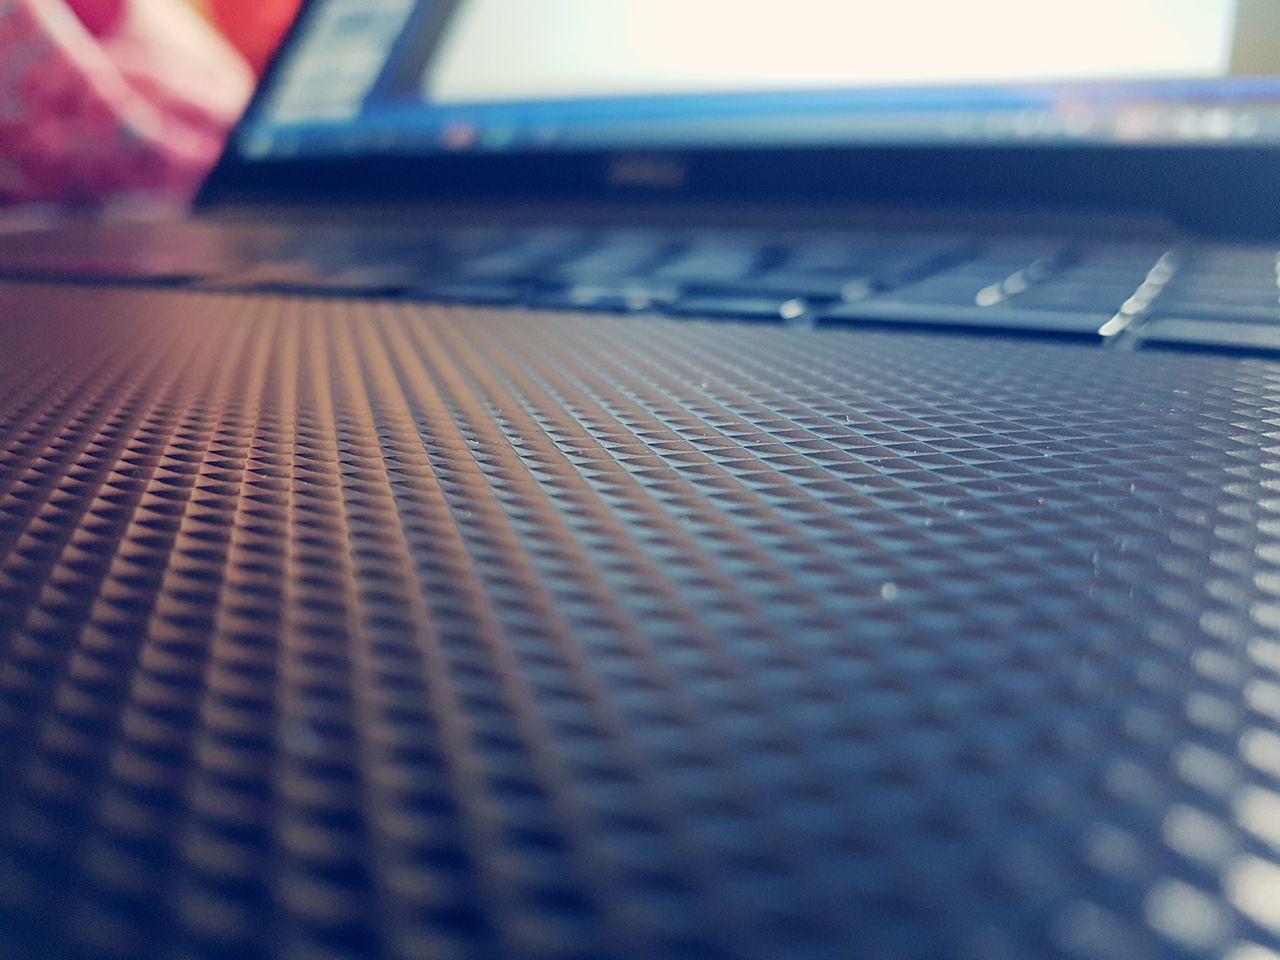 technology, laptop, indoors, selective focus, communication, wireless technology, computer, connection, close-up, no people, computer keyboard, keyboard, computer key, day